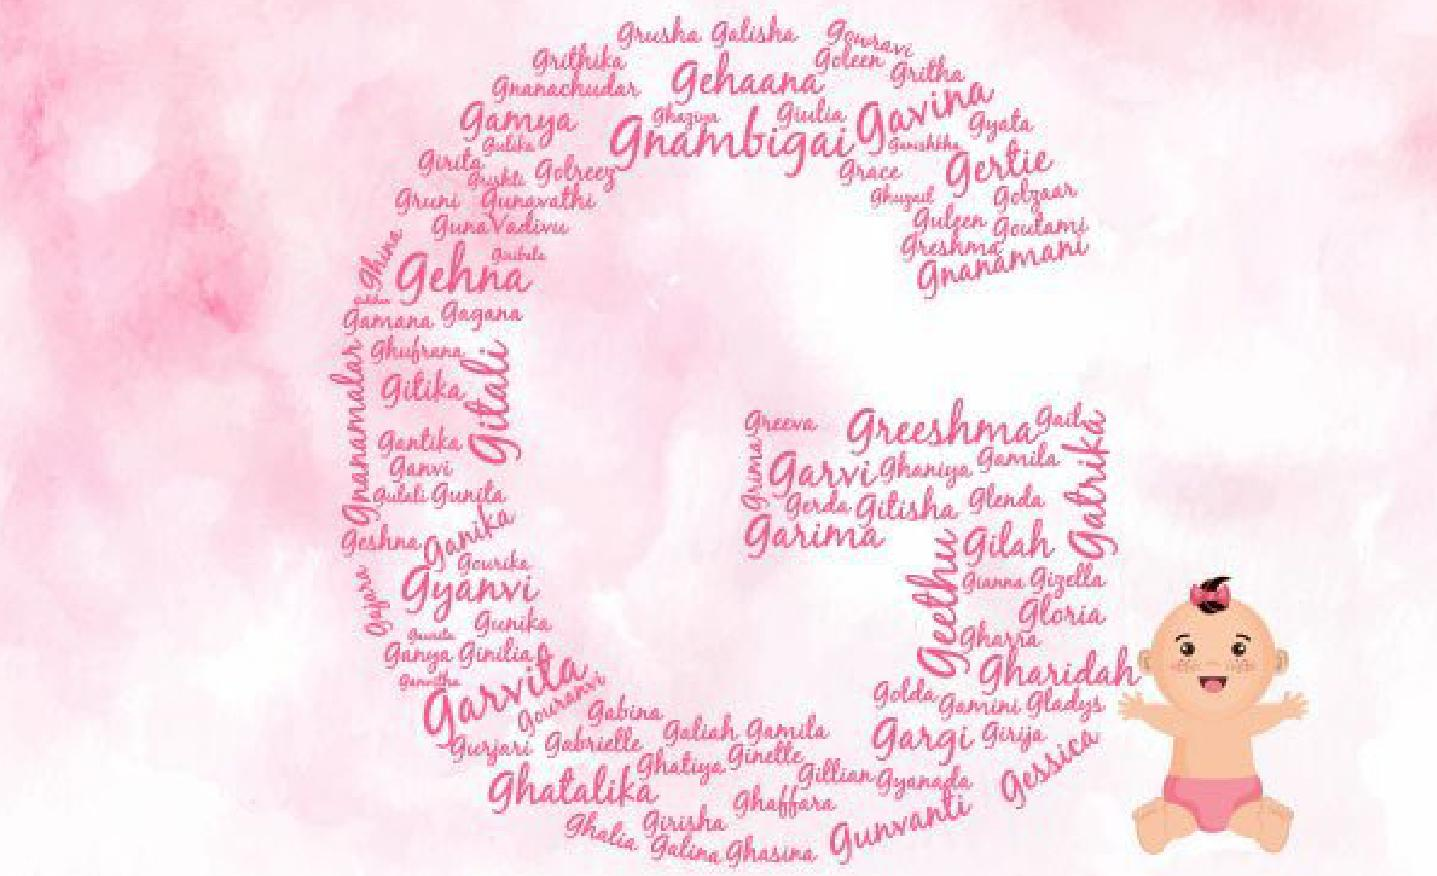 Here are a mix of traditional and modern baby girl names starting with G